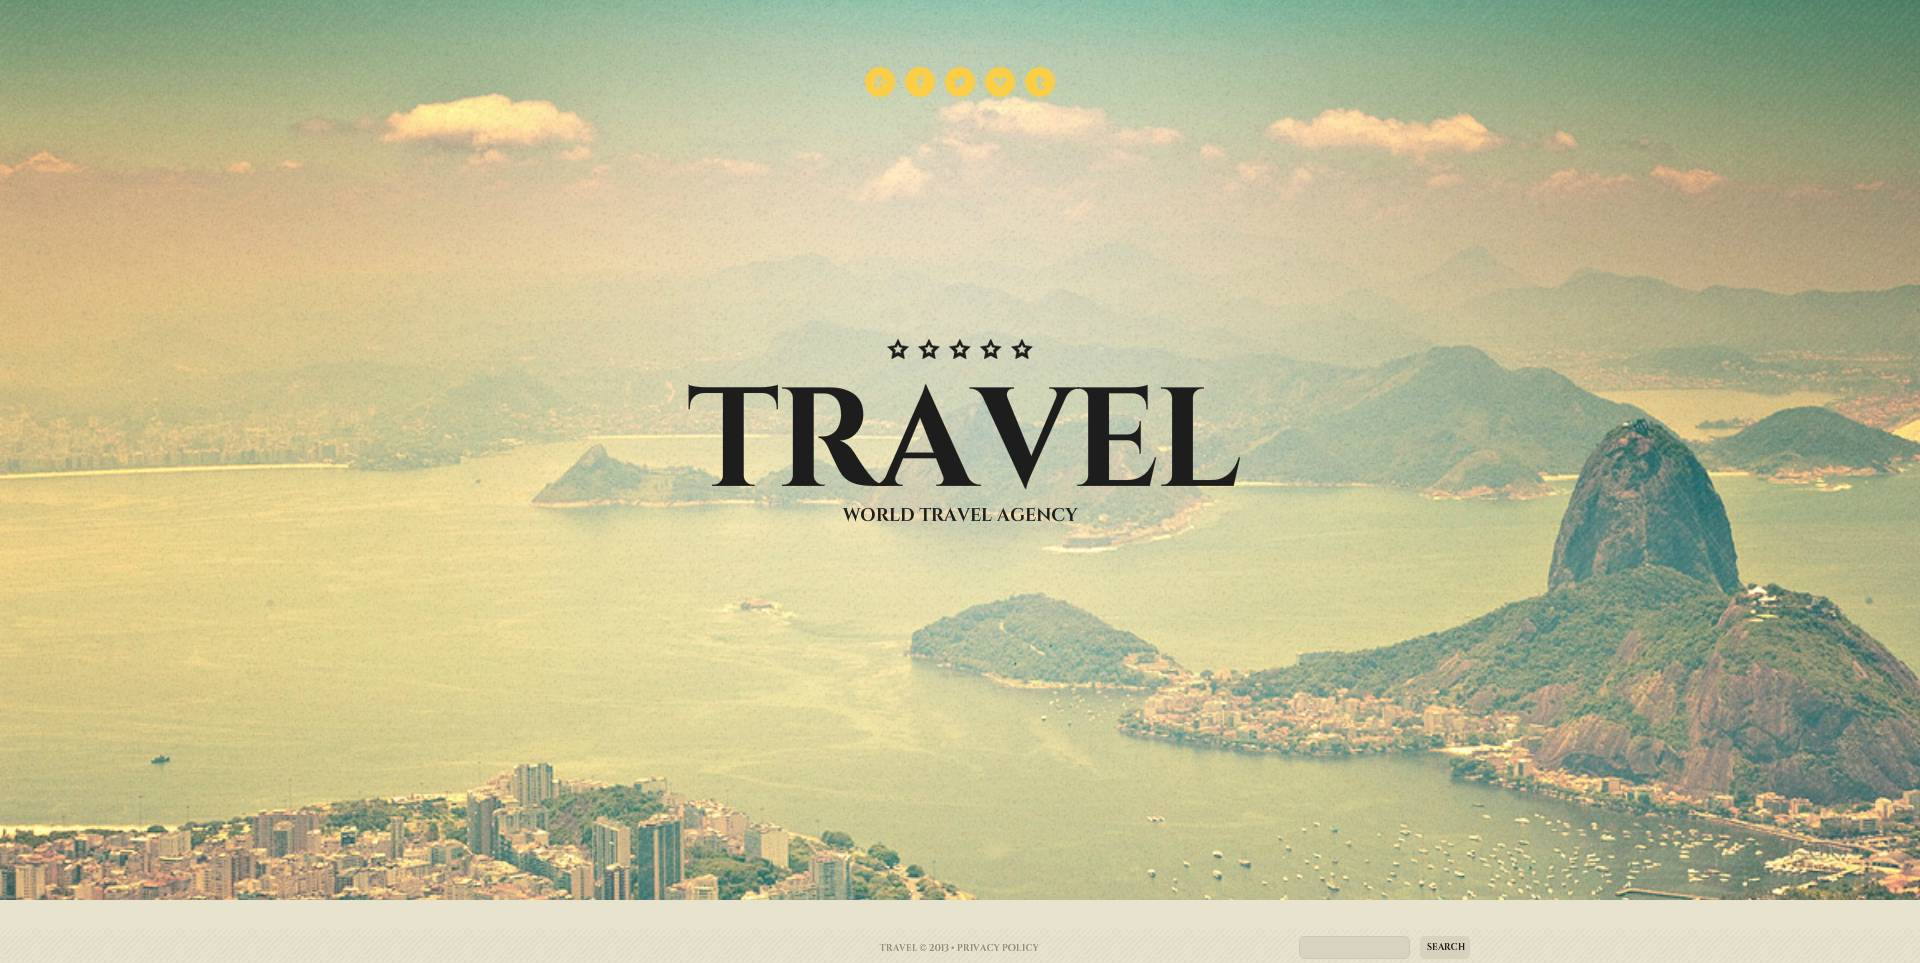 travel-agency-flash-cms-template_46060-original.jpg